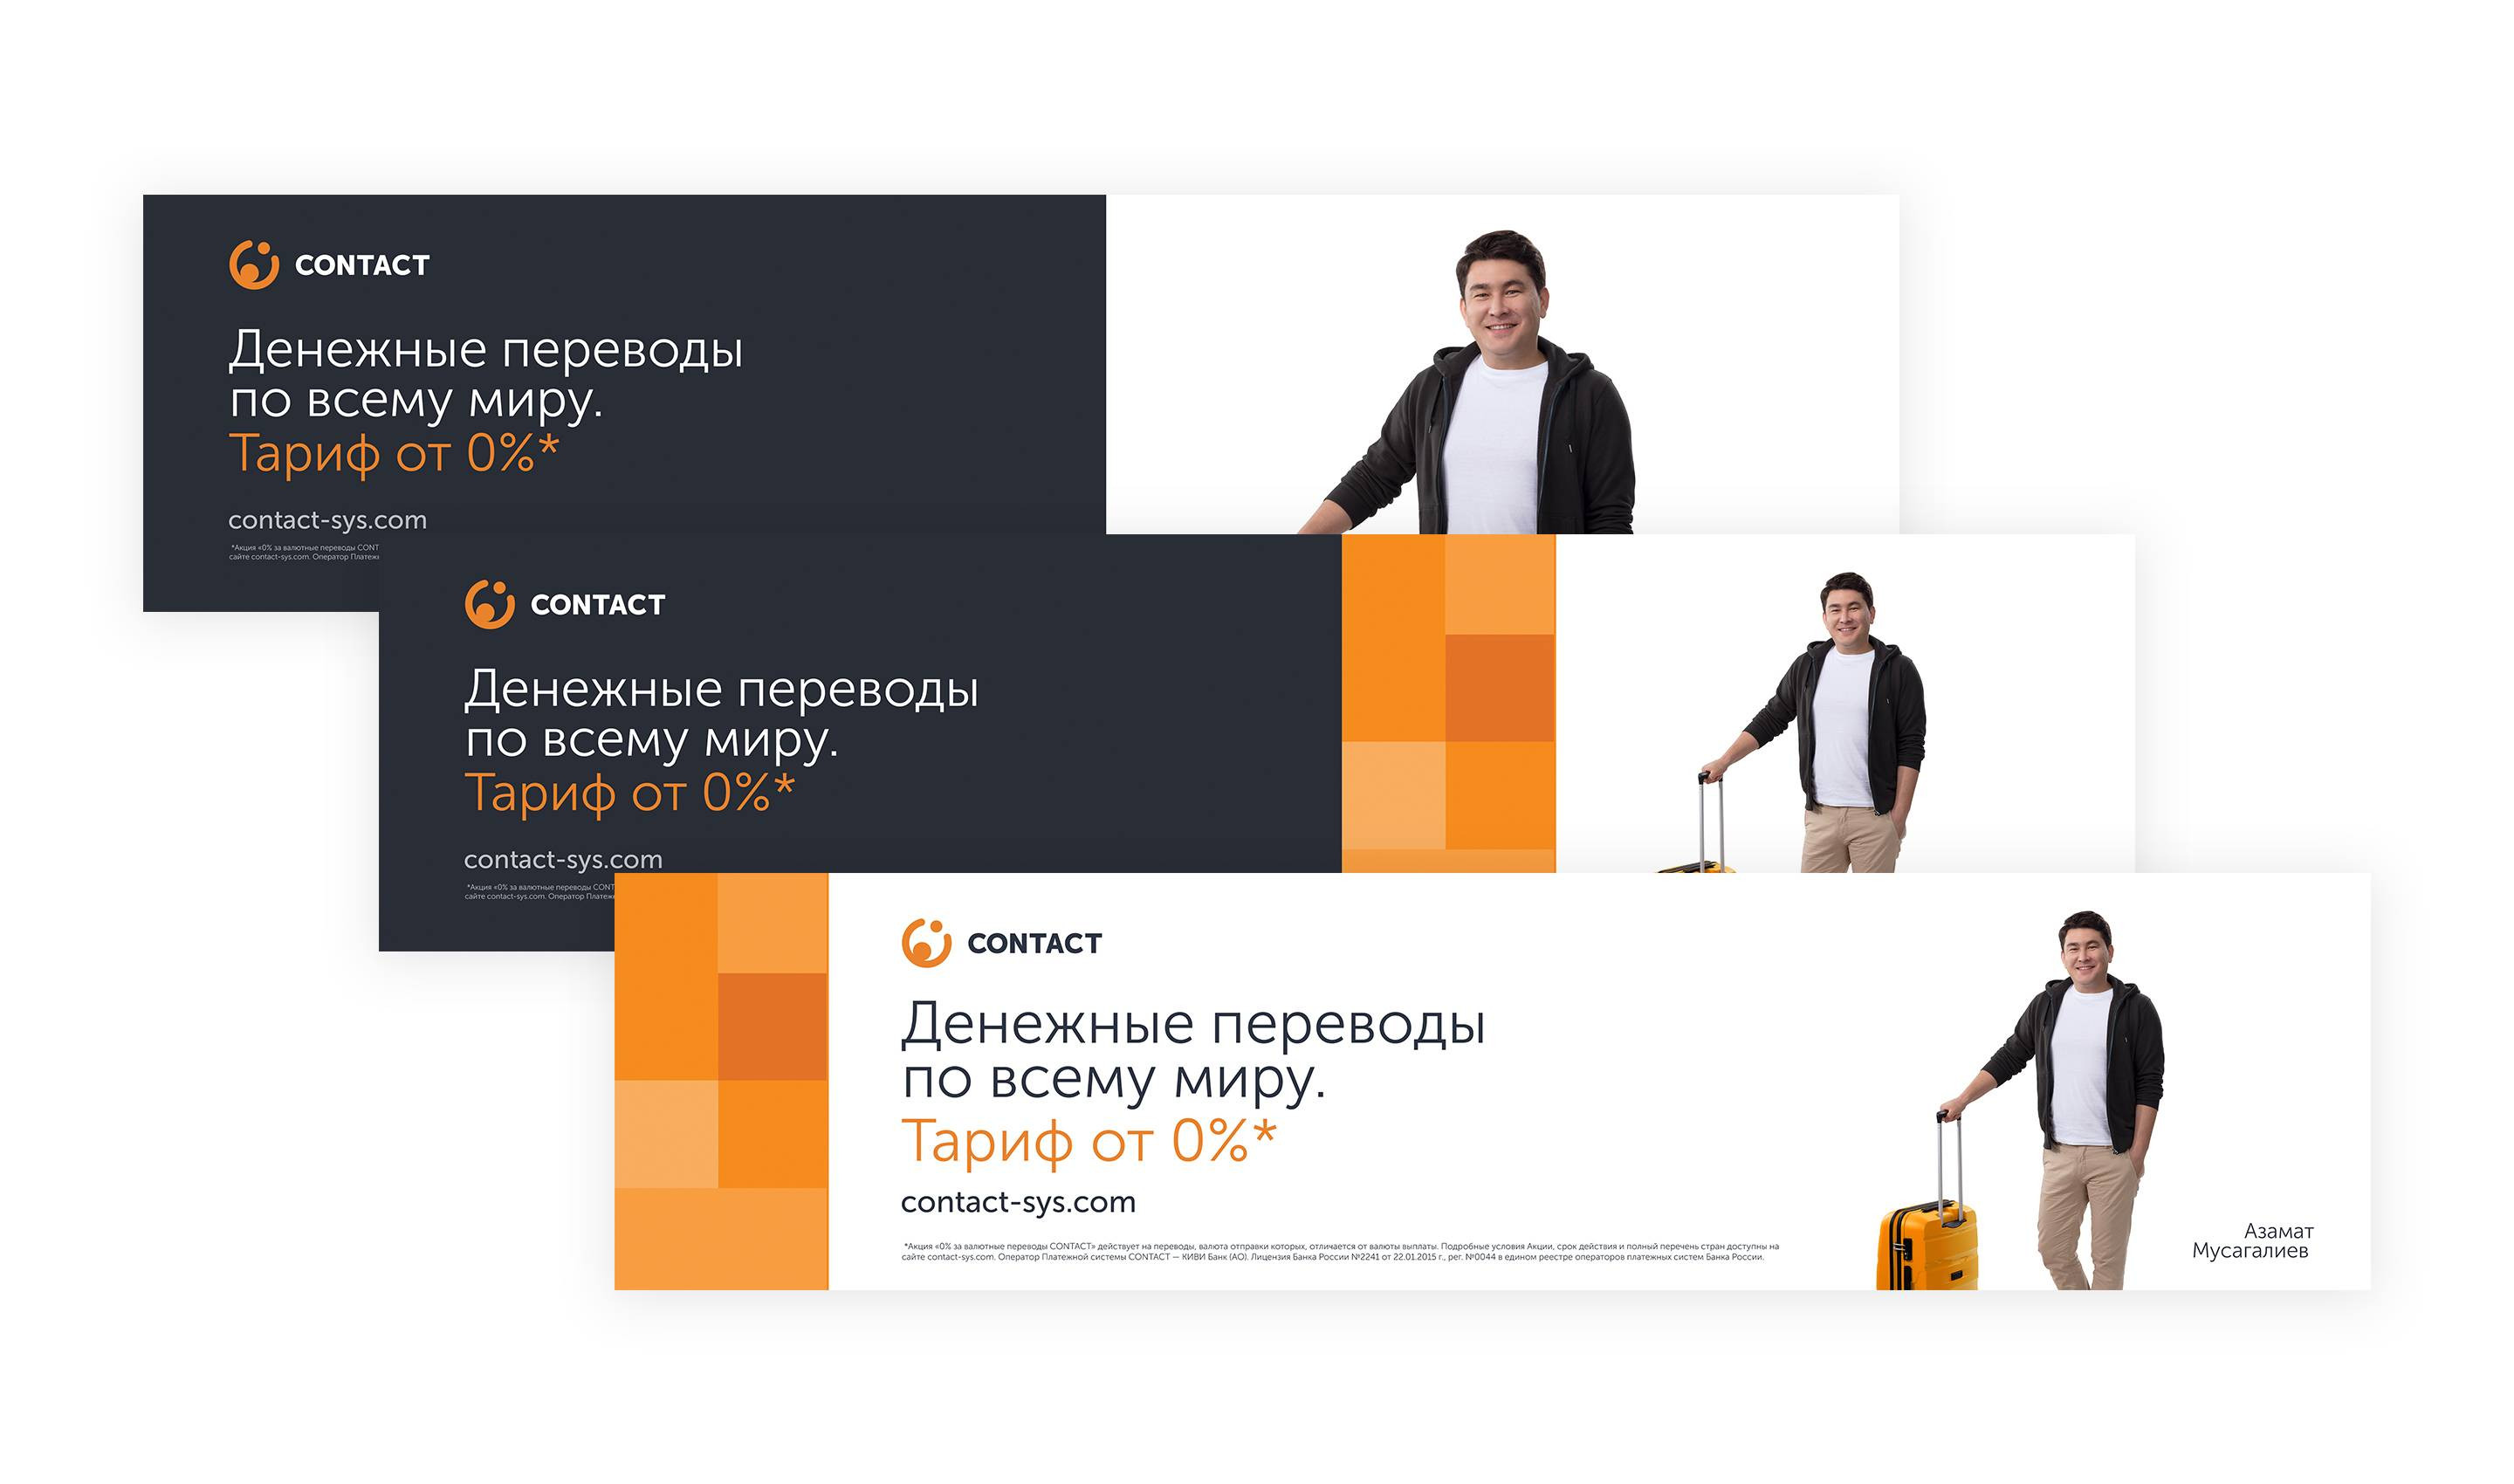 Banners for the advertising campaign